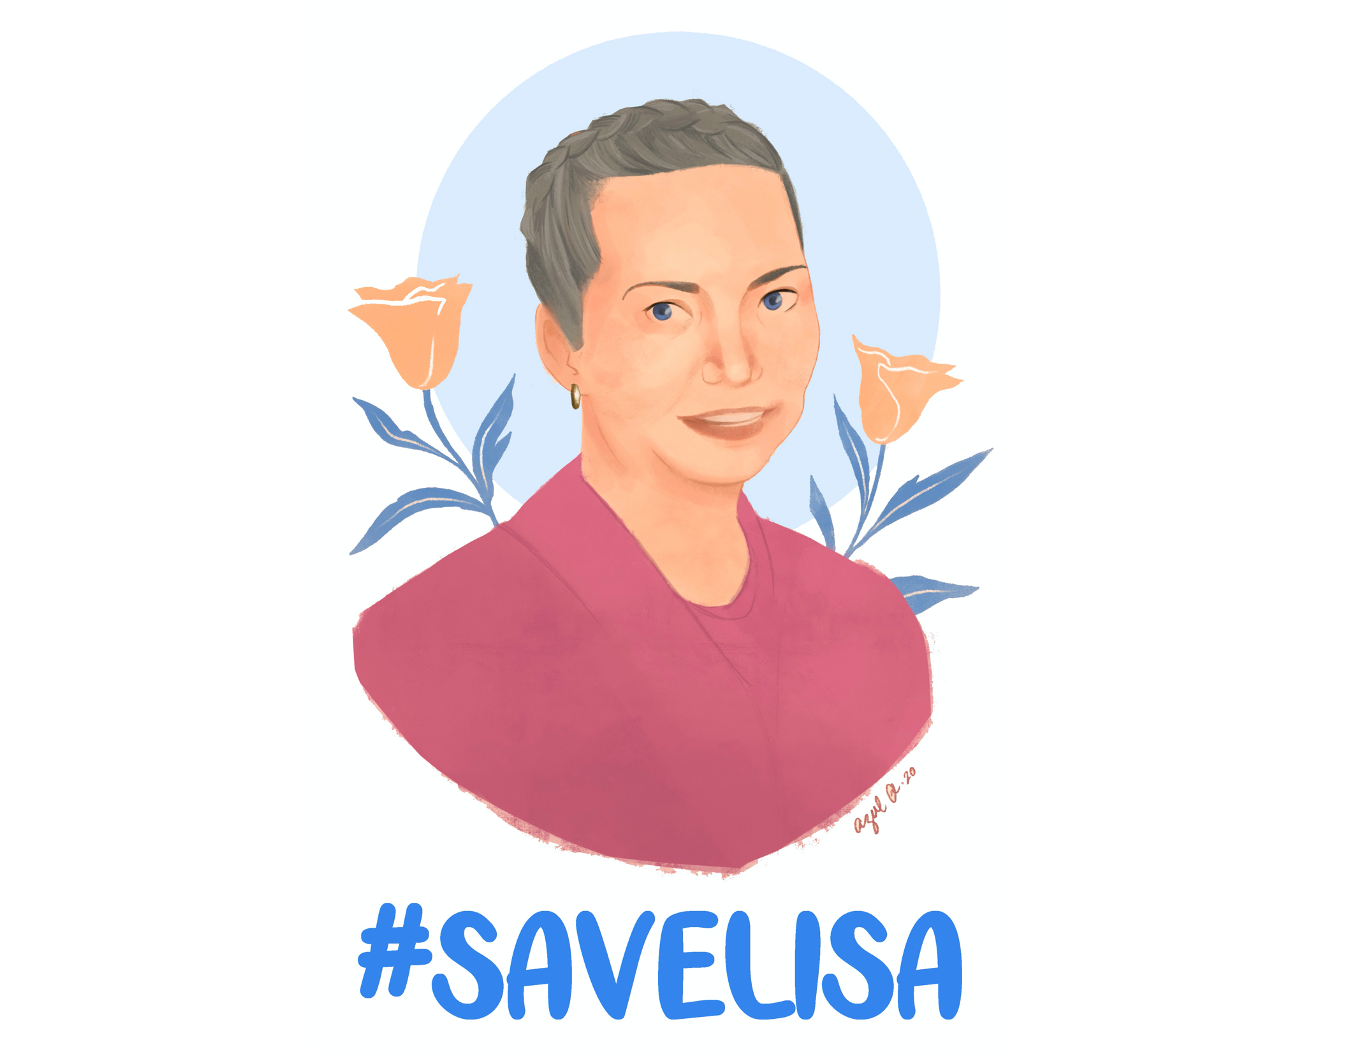 a drawn portrait of a woman with the text #SaveLisa